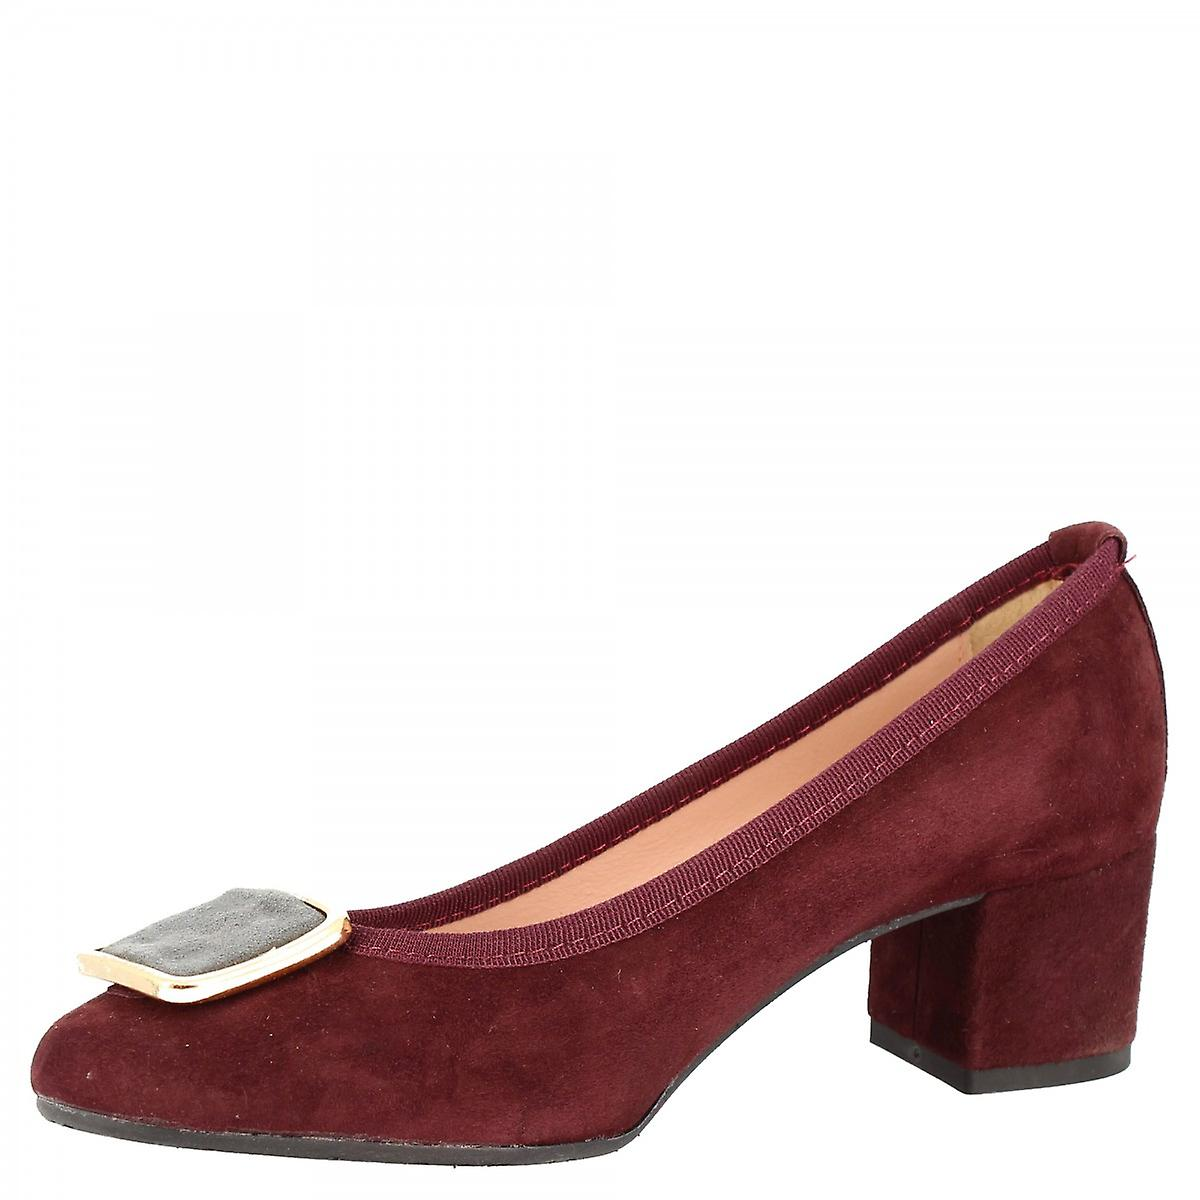 Leonardo Shoes Women's handmade mid heels pumps shoes in burgundy suede leather with buckle